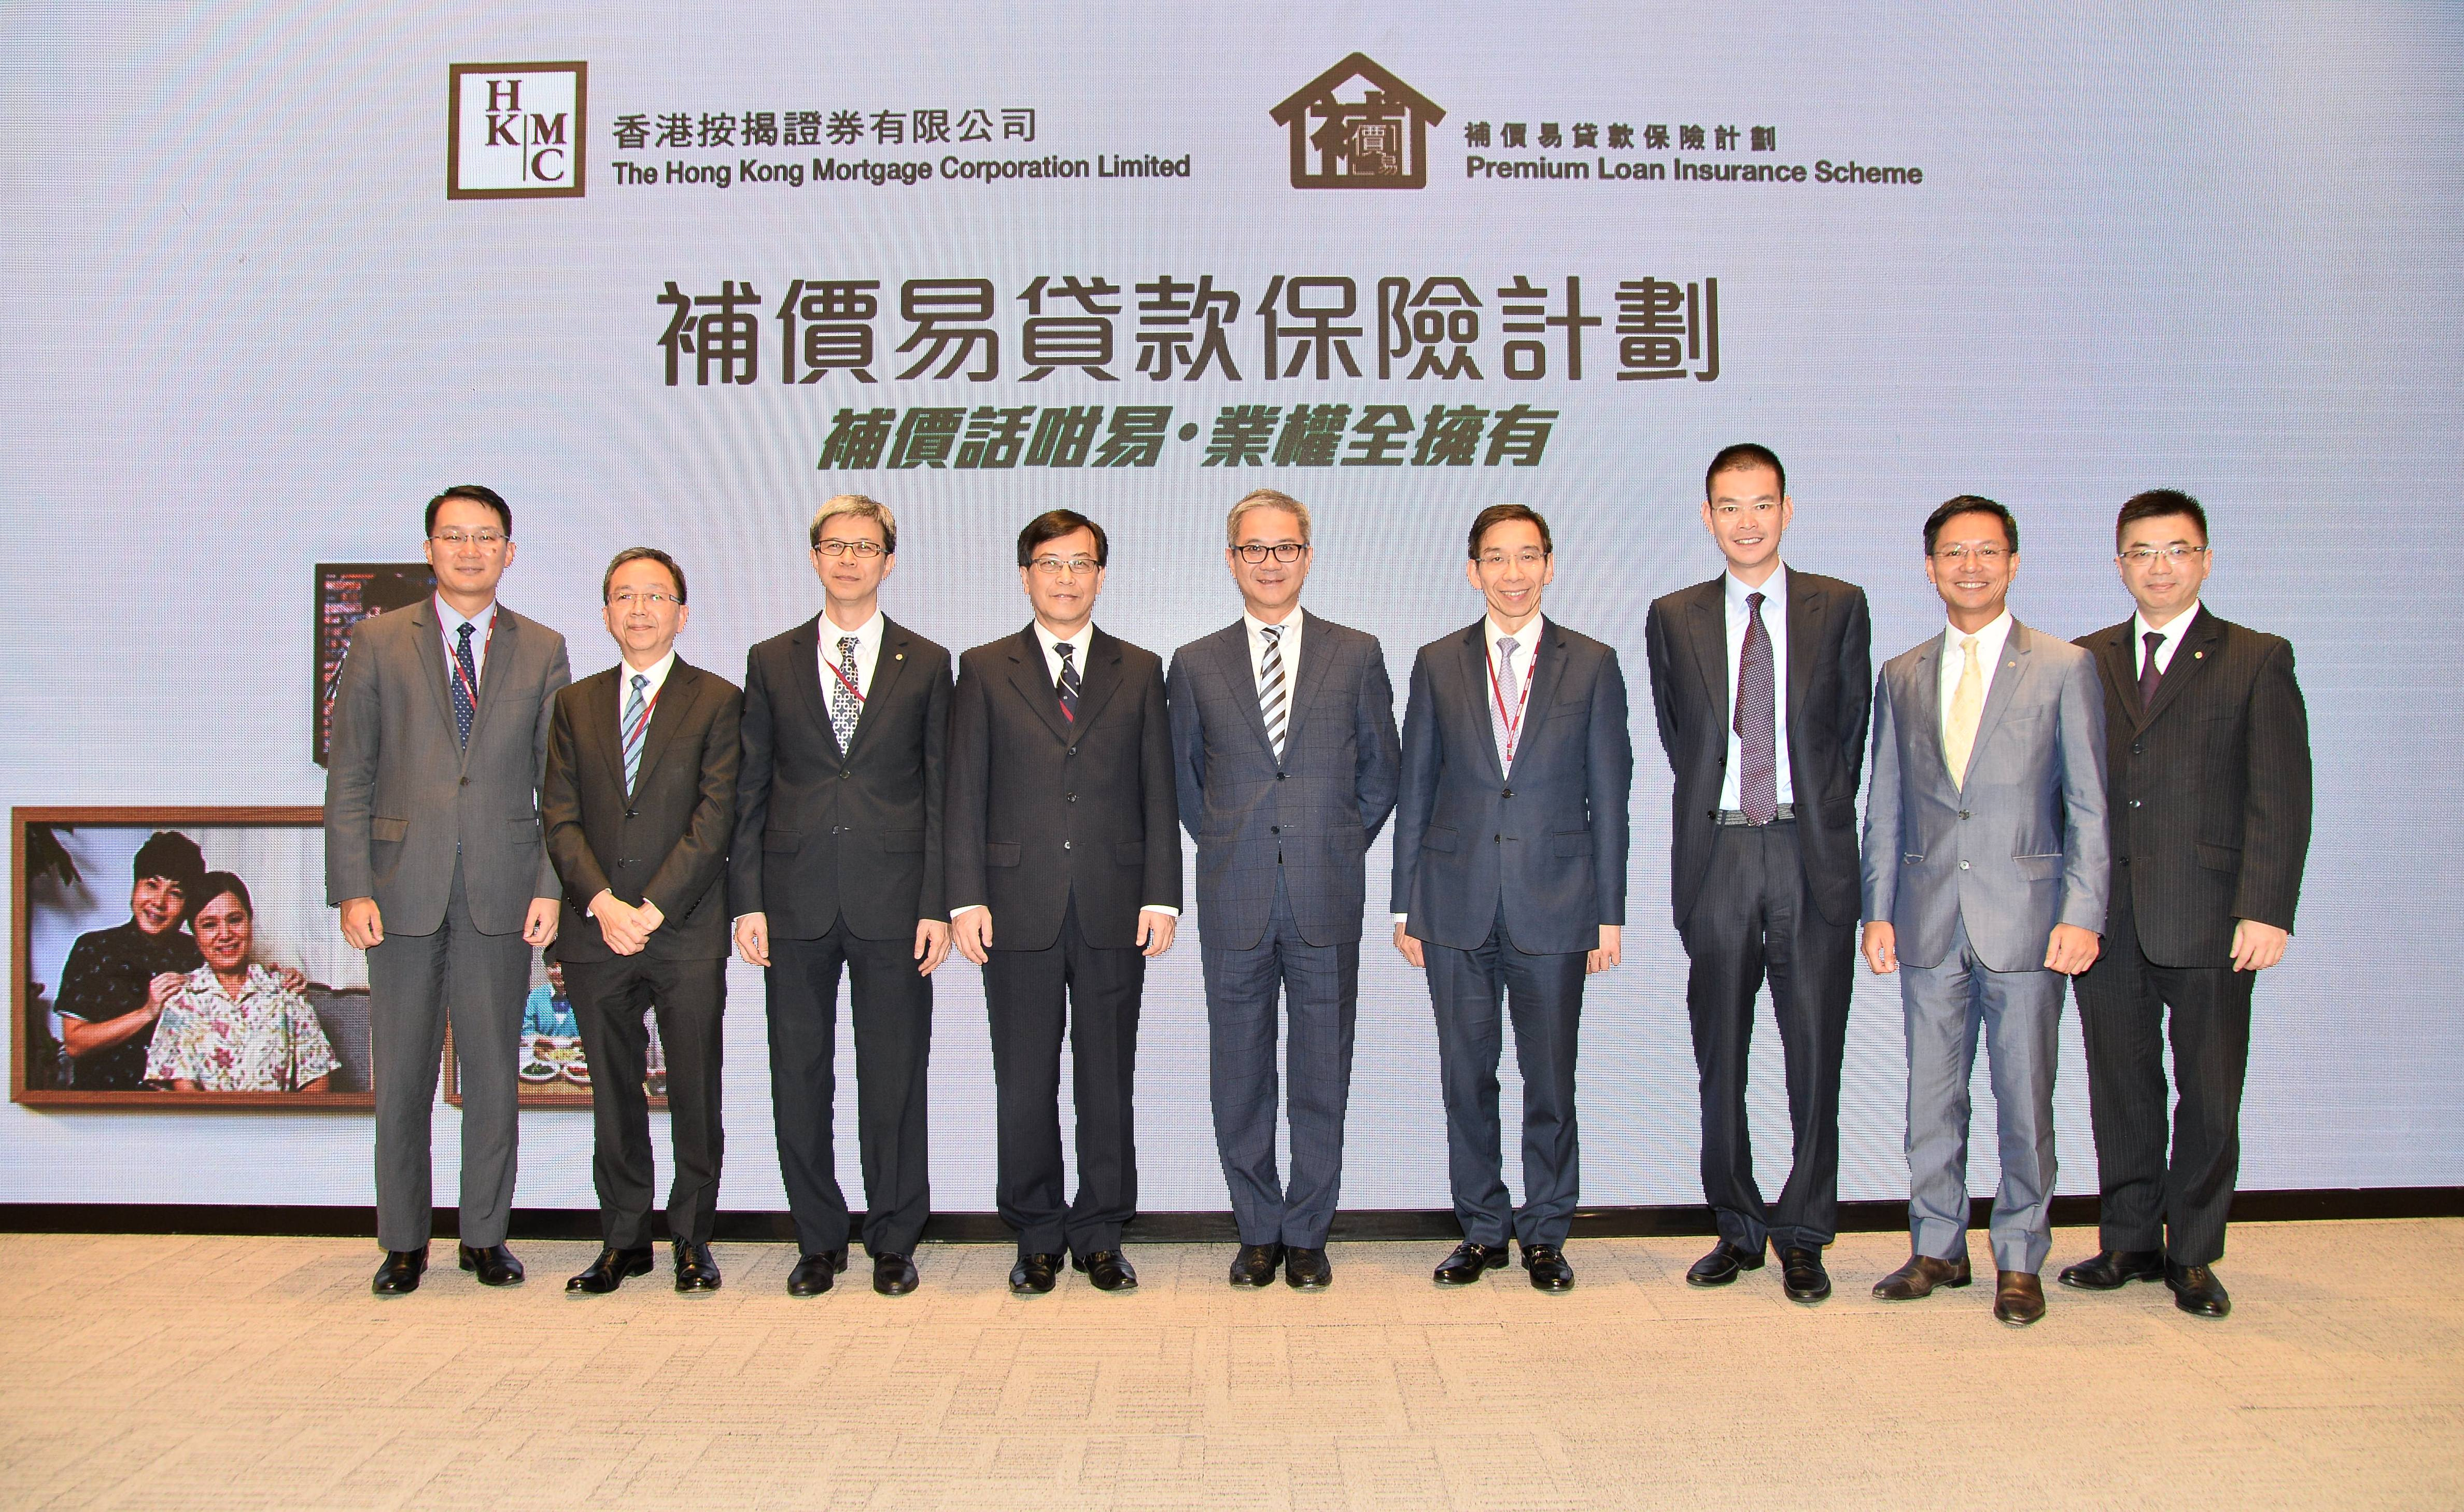 The Chief Executive Officer of the HKMC, Mr Raymond Li (centre), is pictured with the representatives of the PLIS's eight participating banks.